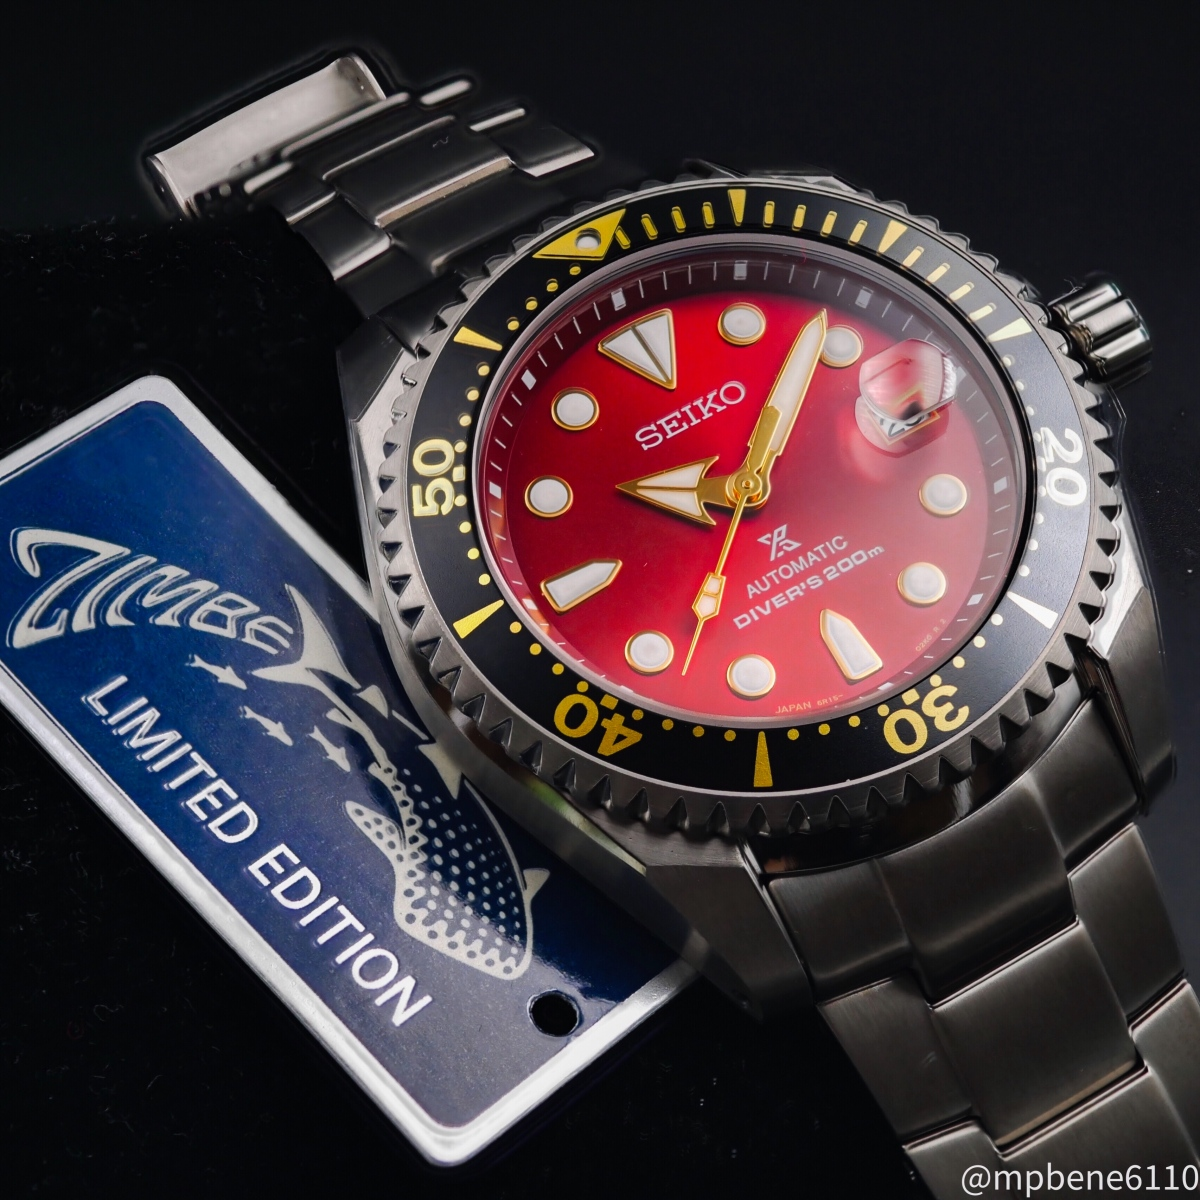 The Red Side of Life – Seiko Shogun Zimbe Red (SPB099)